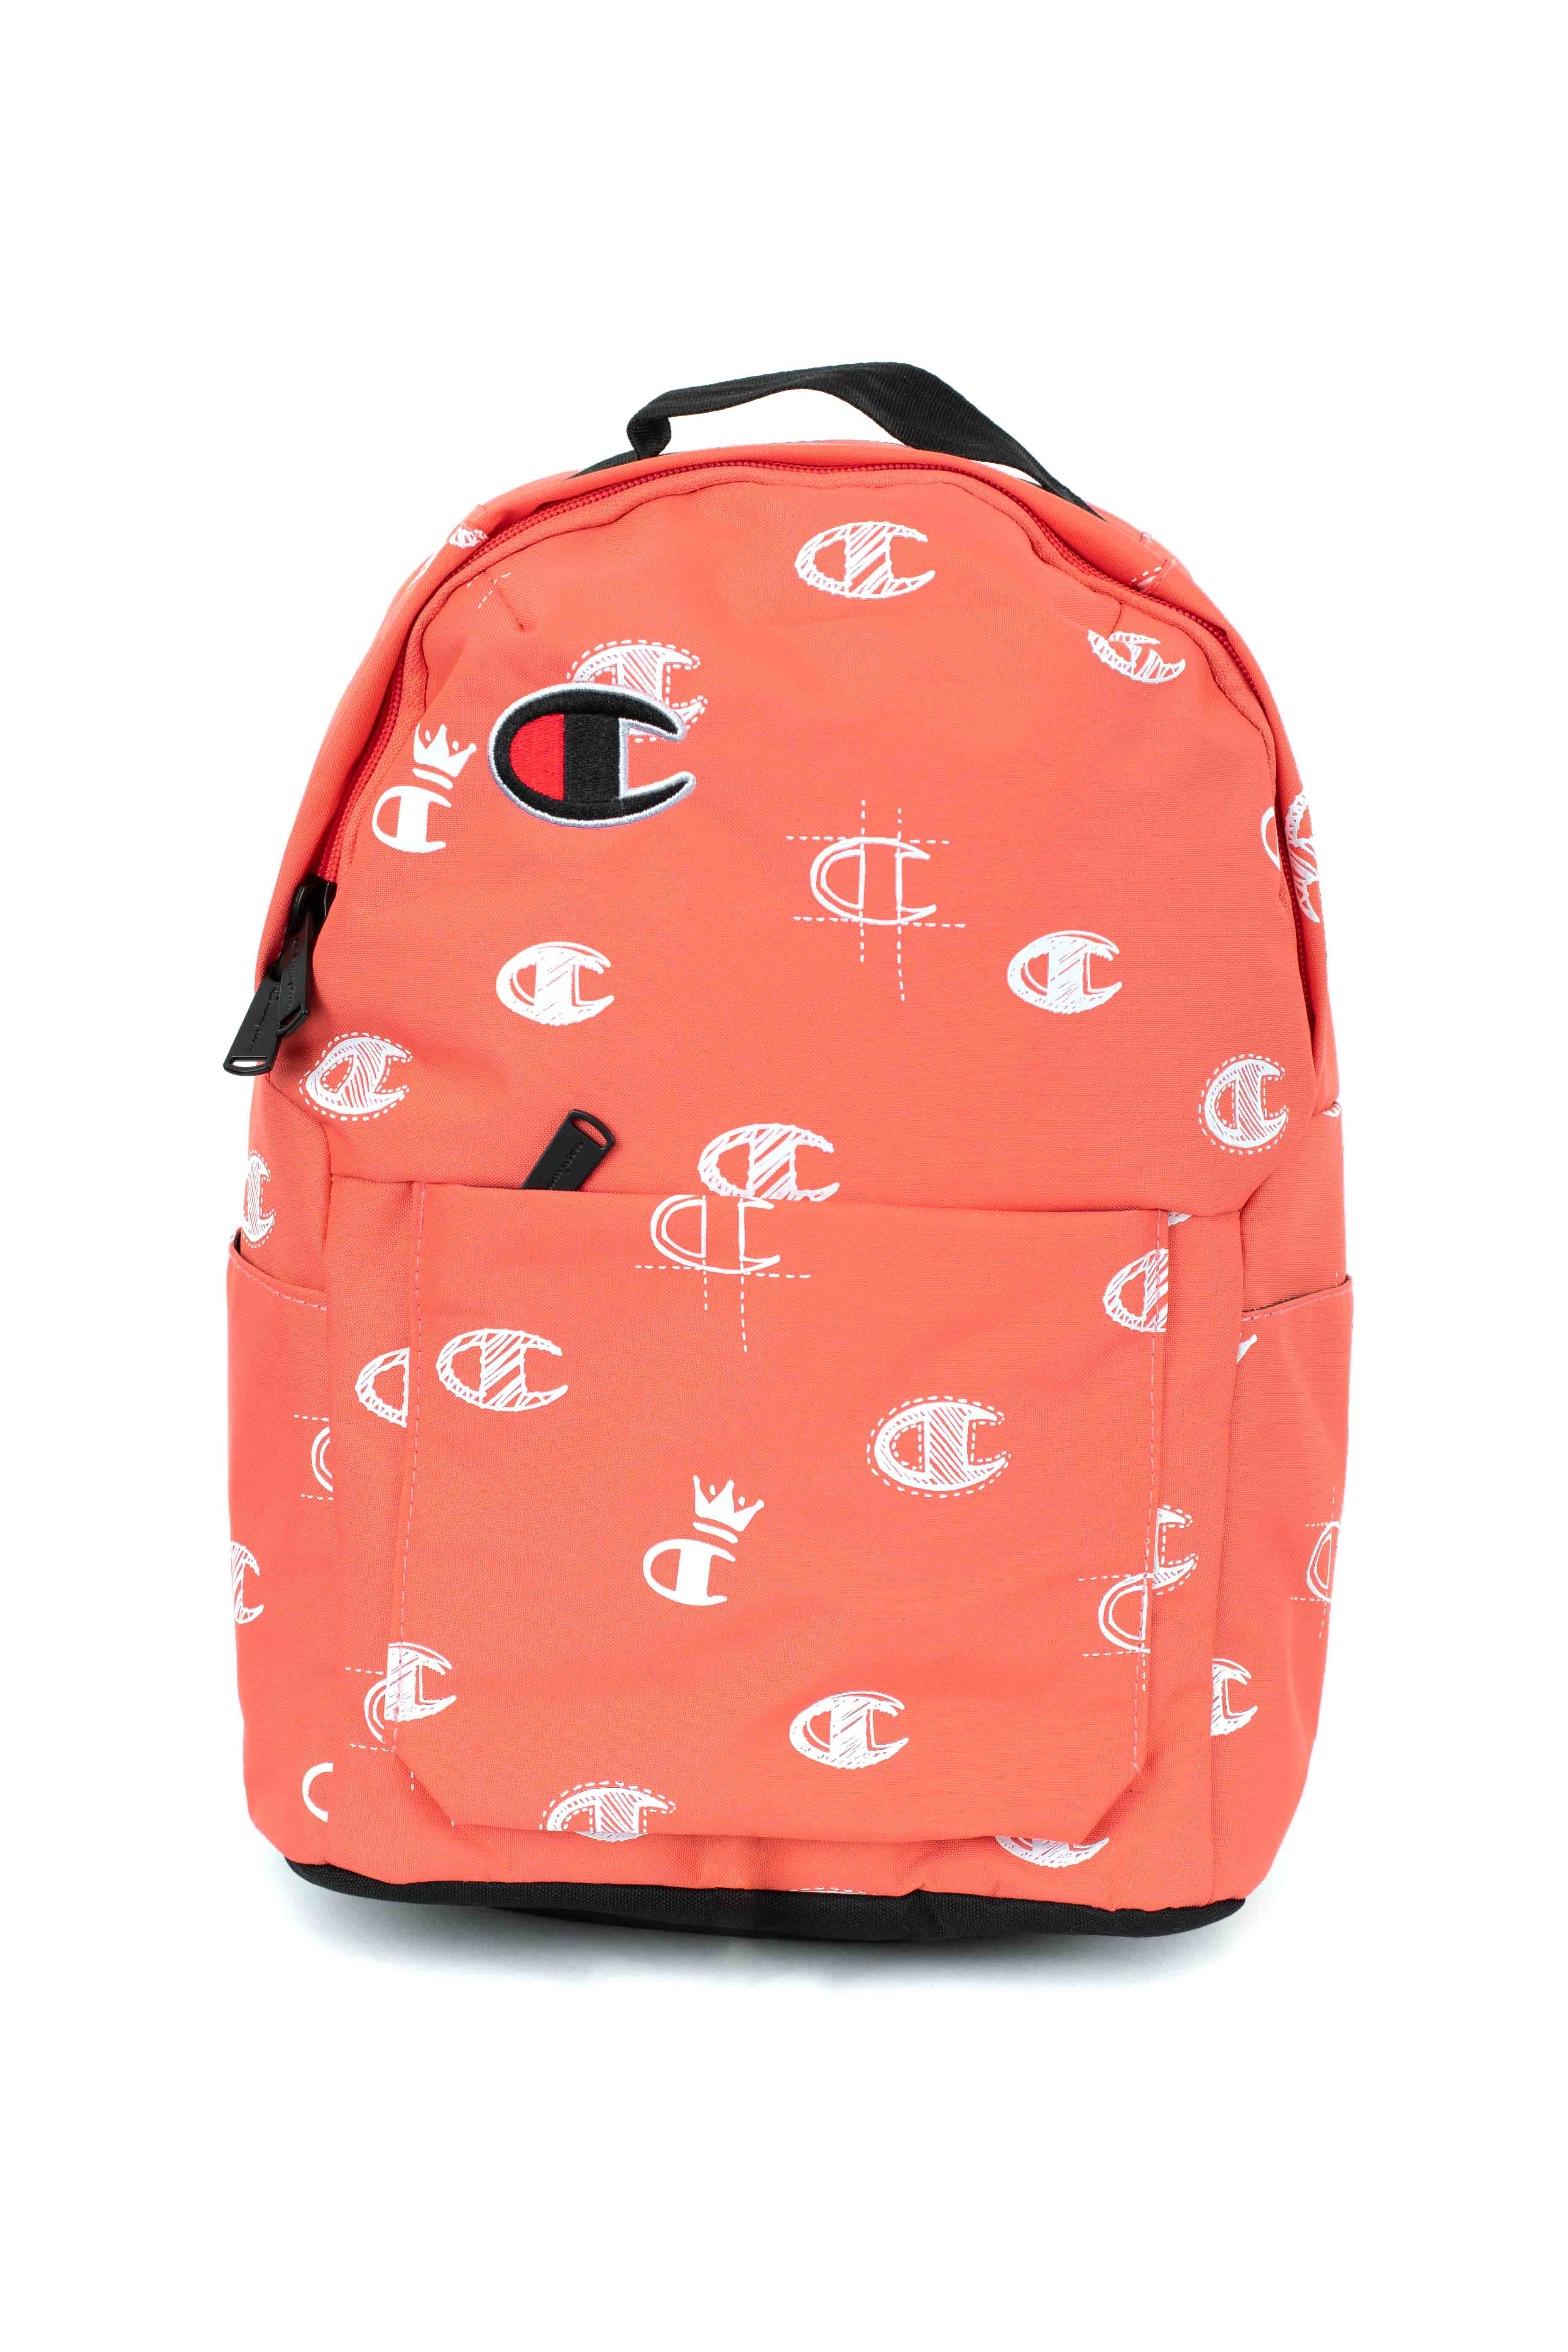 (CH1066) Advocate Mini Backpack - Coral